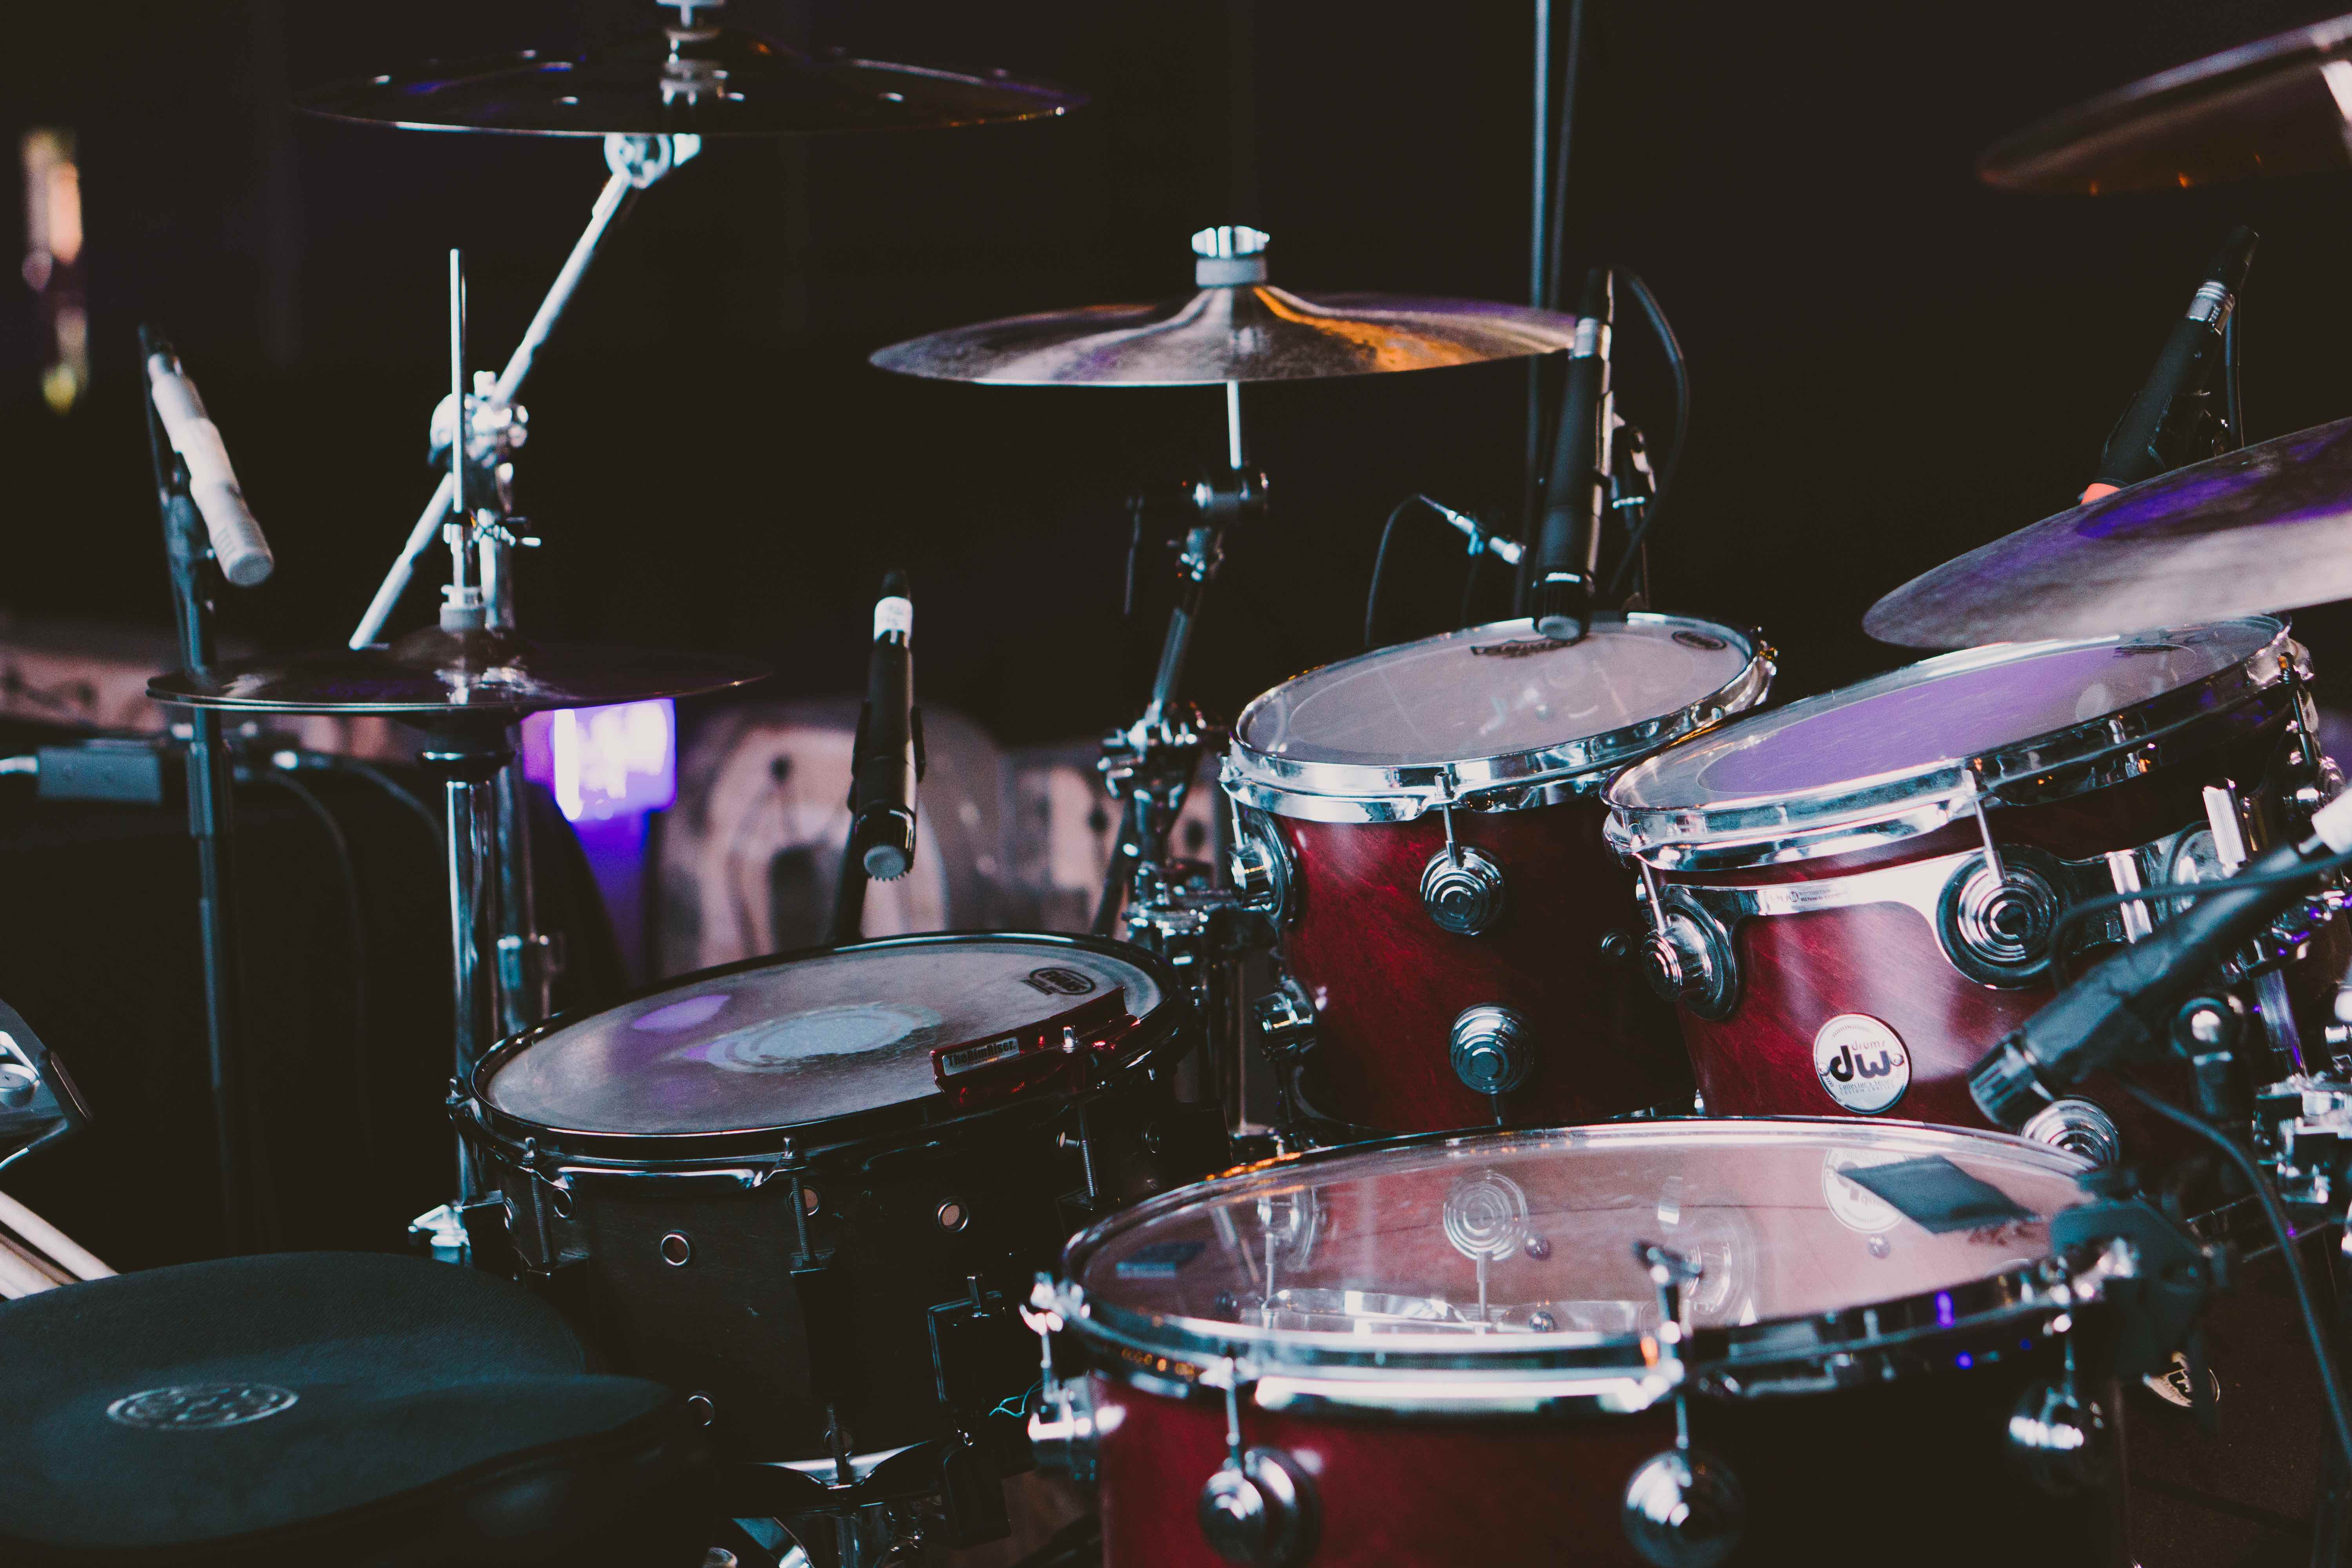 A red drum kit.